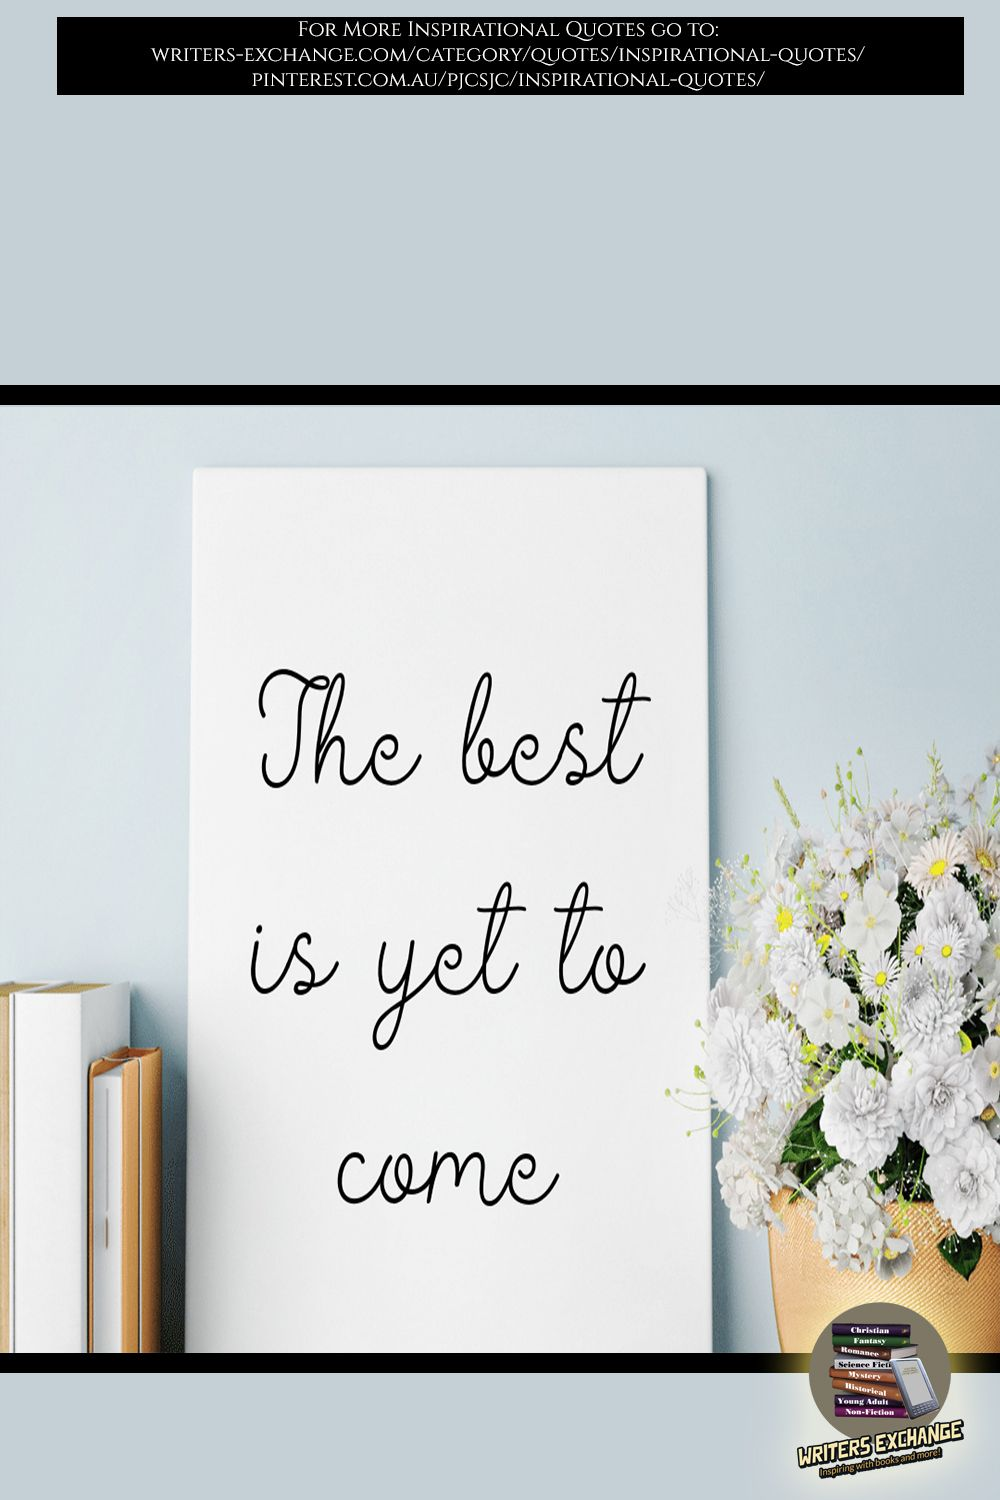 The best is yet to come... inspirational quote